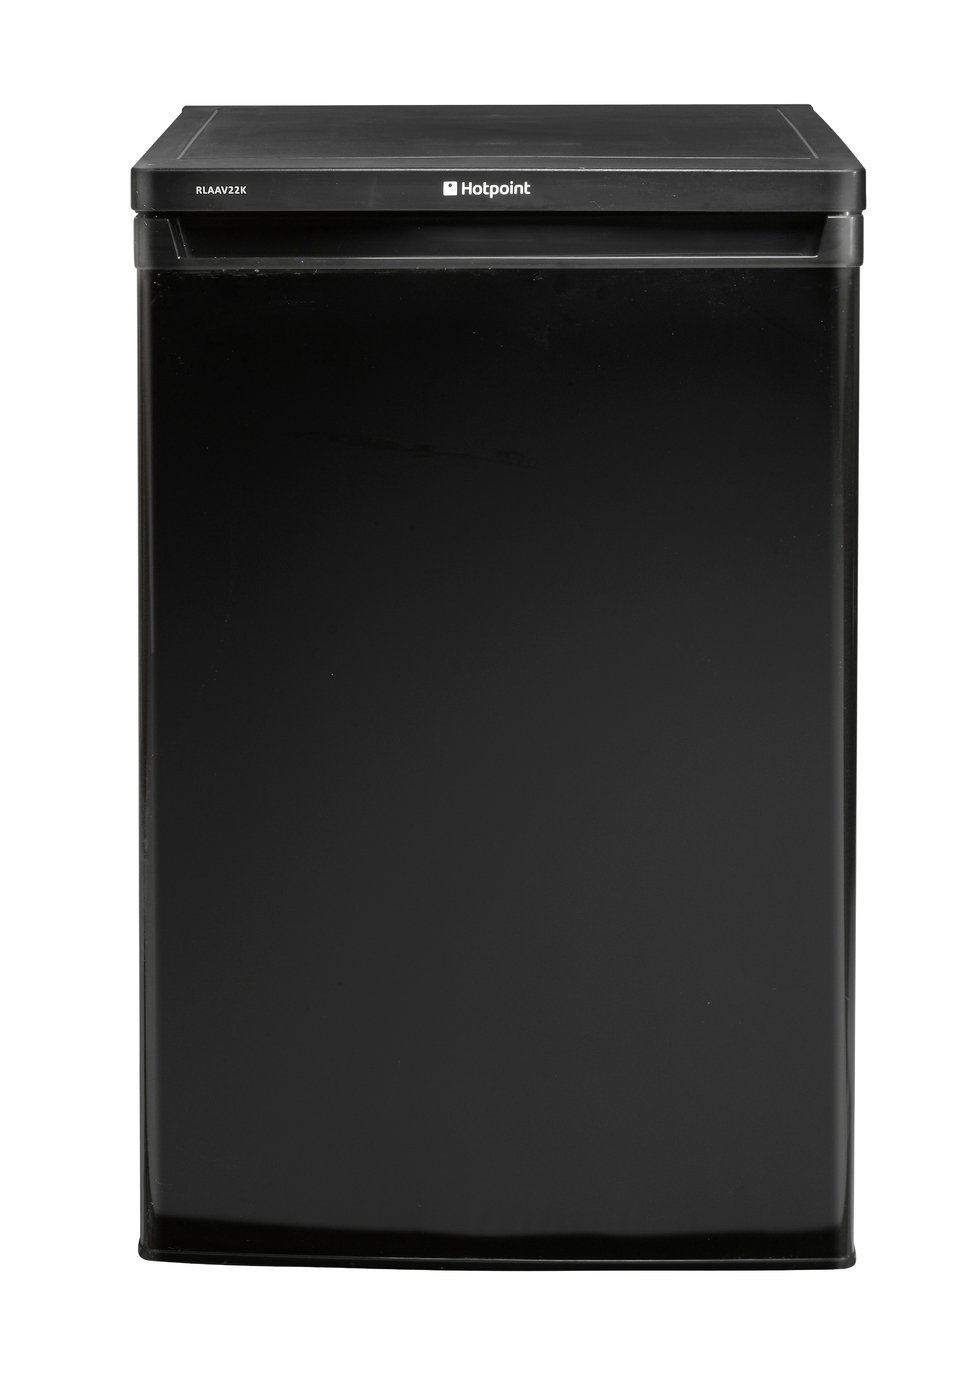 Hotpoint RLAAV22K.1 Under Counter Fridge - Black